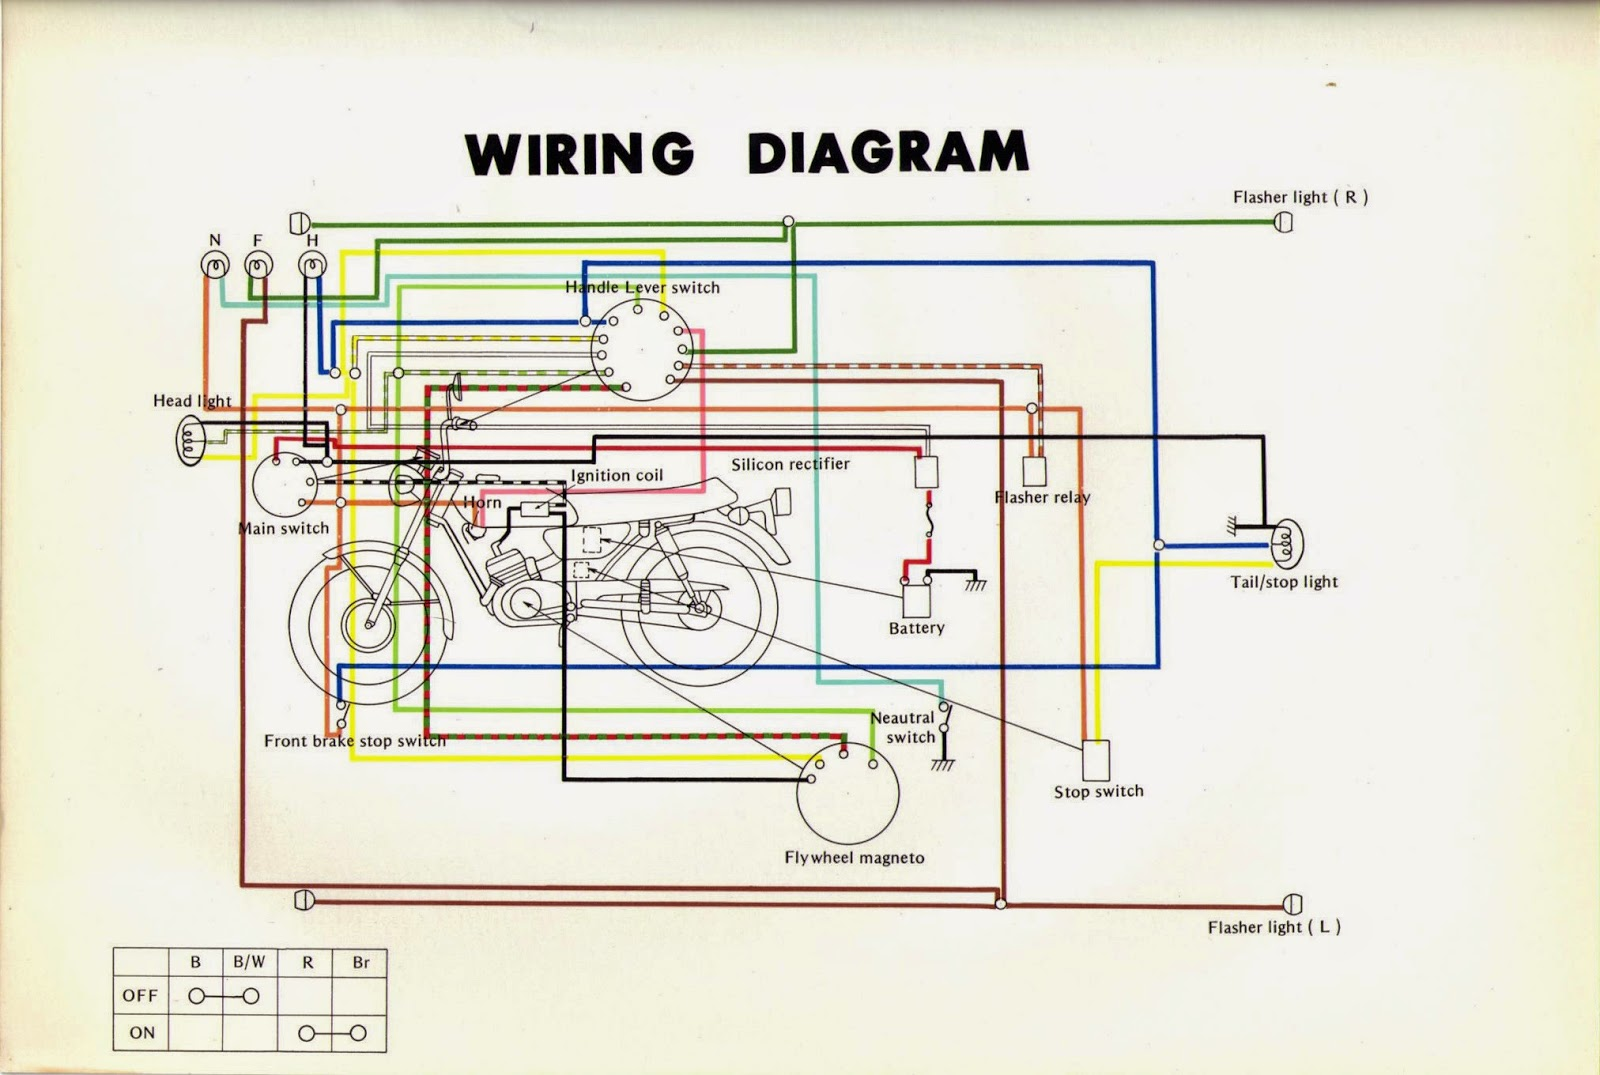 Yamaha service manual003 yamaha bolt wiring diagram ez go wiring diagram \u2022 wiring diagrams 2009 Yamaha Raider Wiring-Diagram at reclaimingppi.co